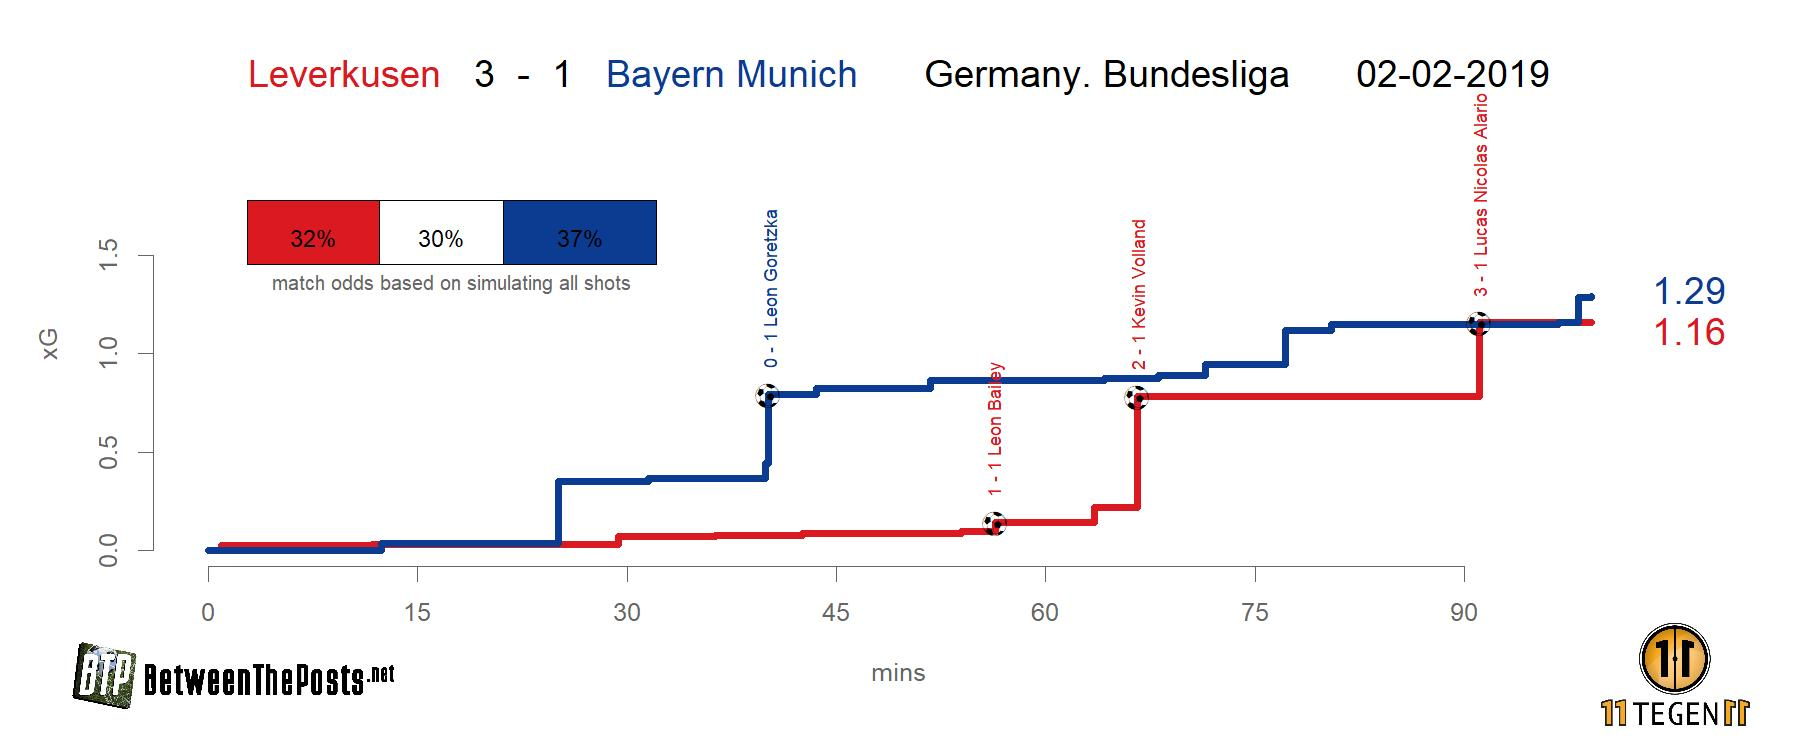 Expected goals plot Bayer Leverkusen - Bayern Munich 3-1 Bundesliga